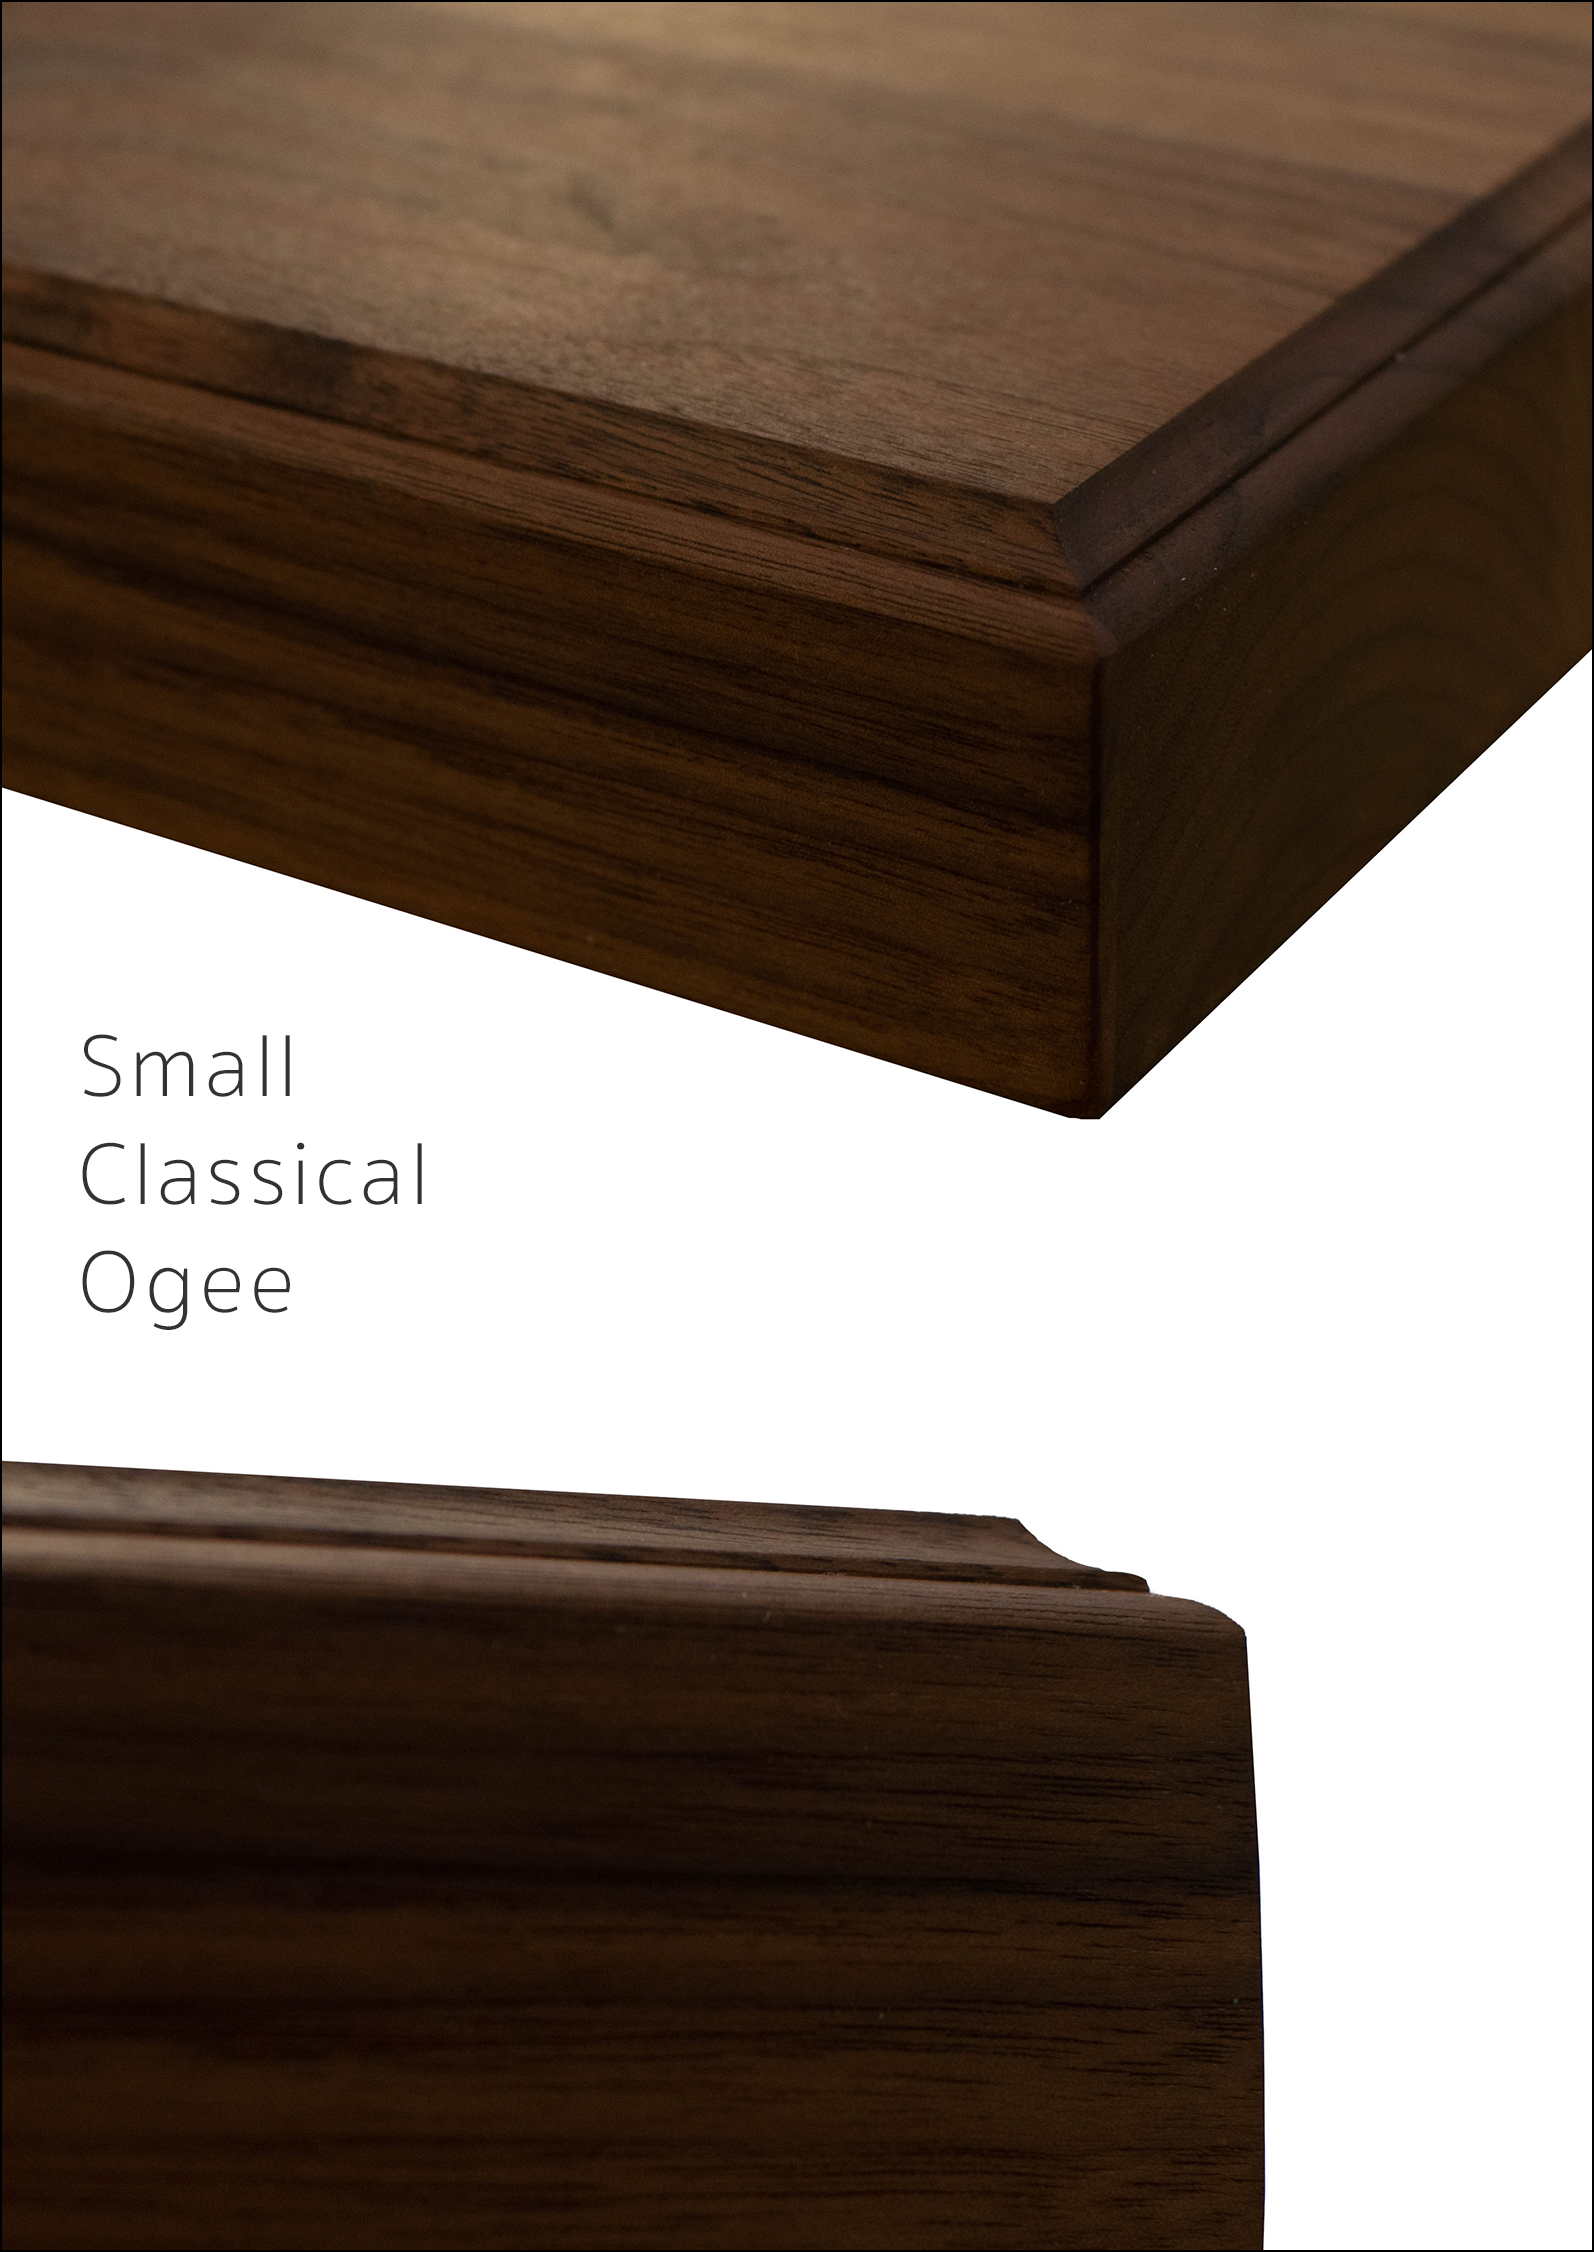 Small Classical Ogee